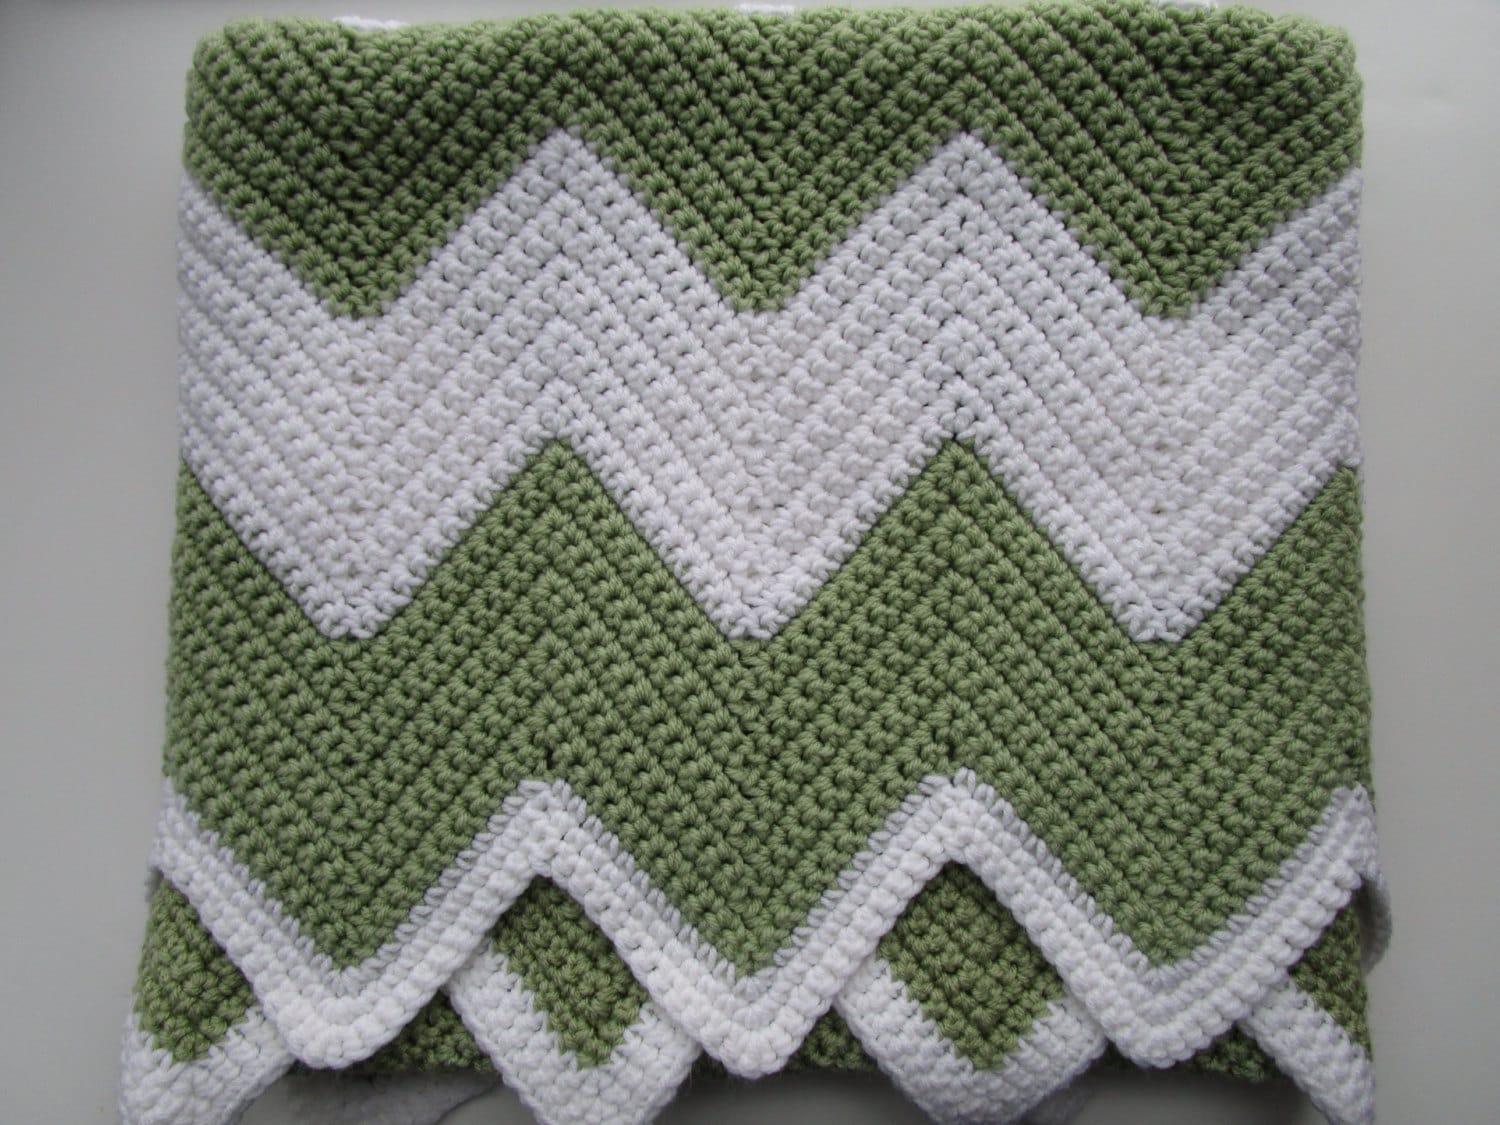 Crochet afghan pattern easy chevron crochet blanket pattern zoom bankloansurffo Gallery